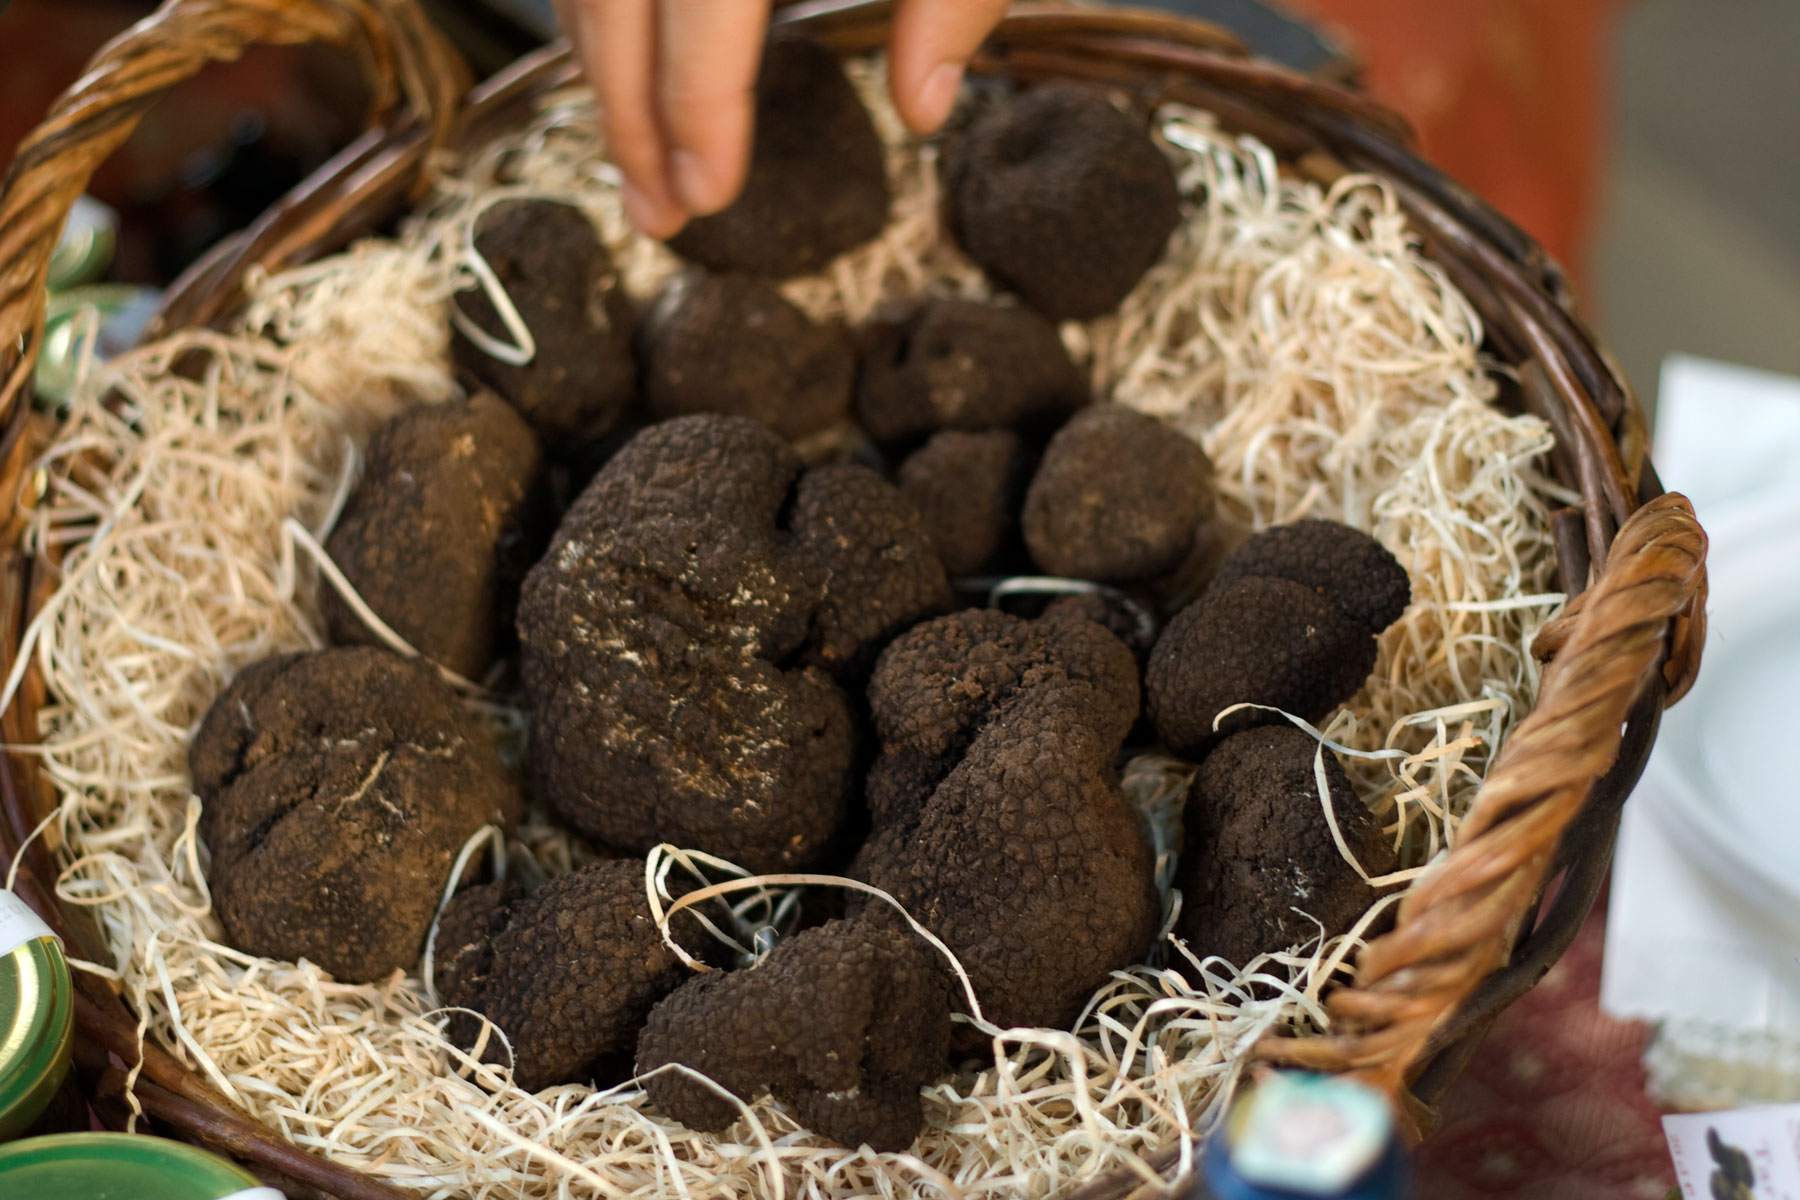 A small basket filled with black truffle mushrooms.